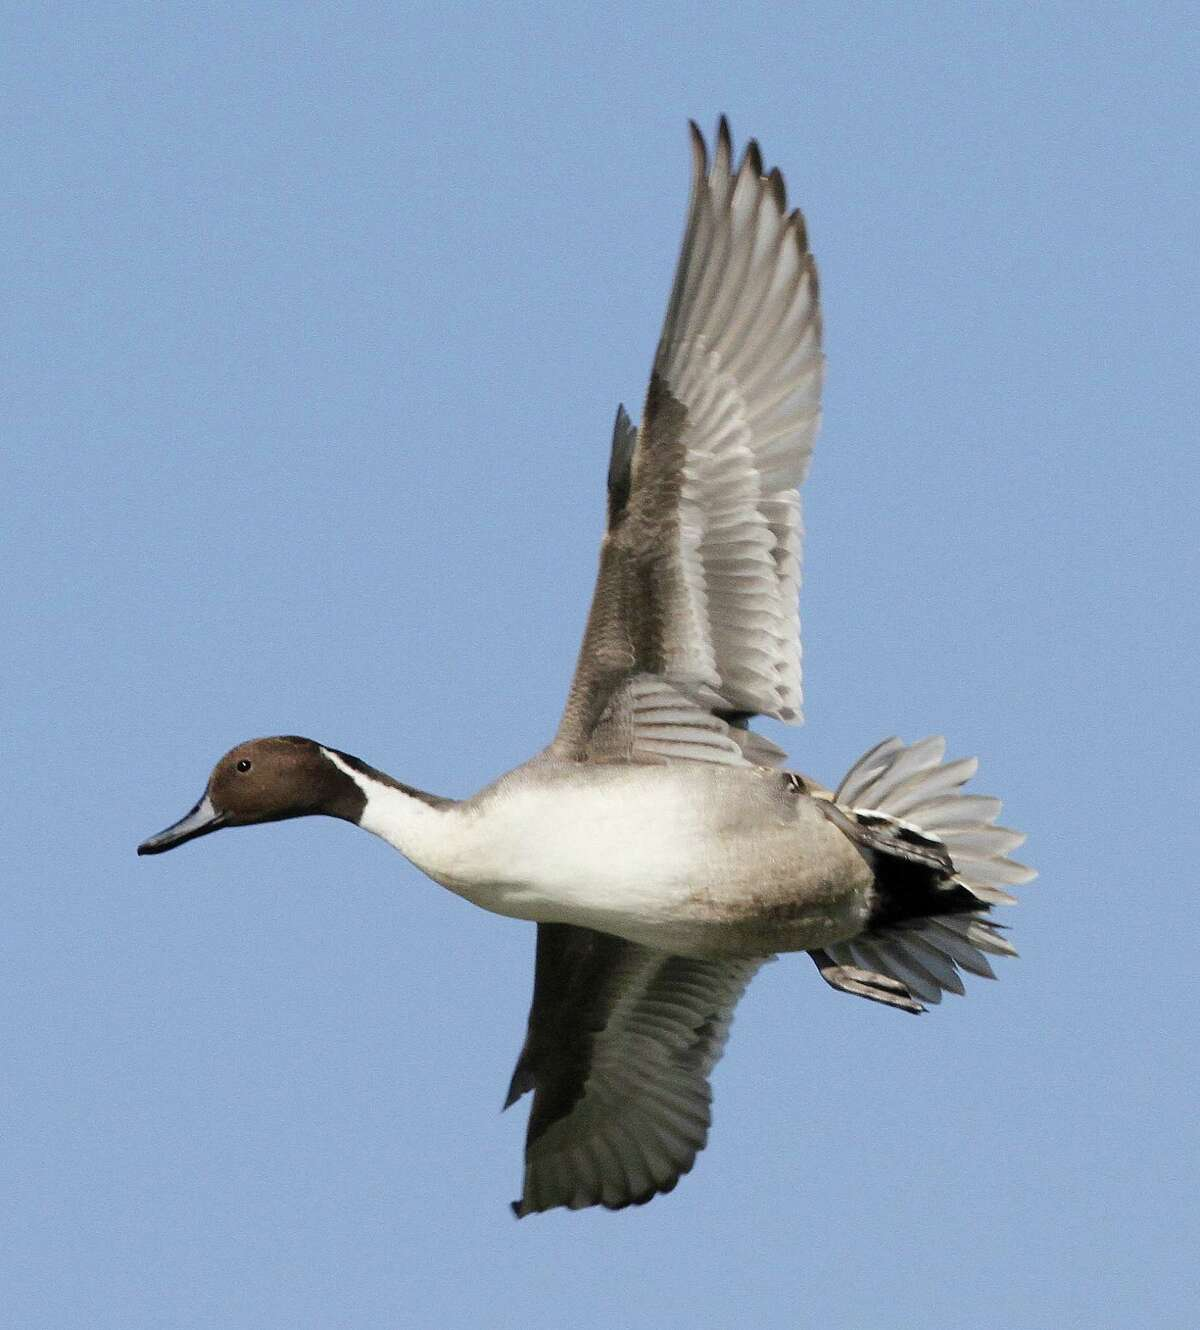 Strong North American duck and goose populations and good habitat conditions in most of Texas bode well.